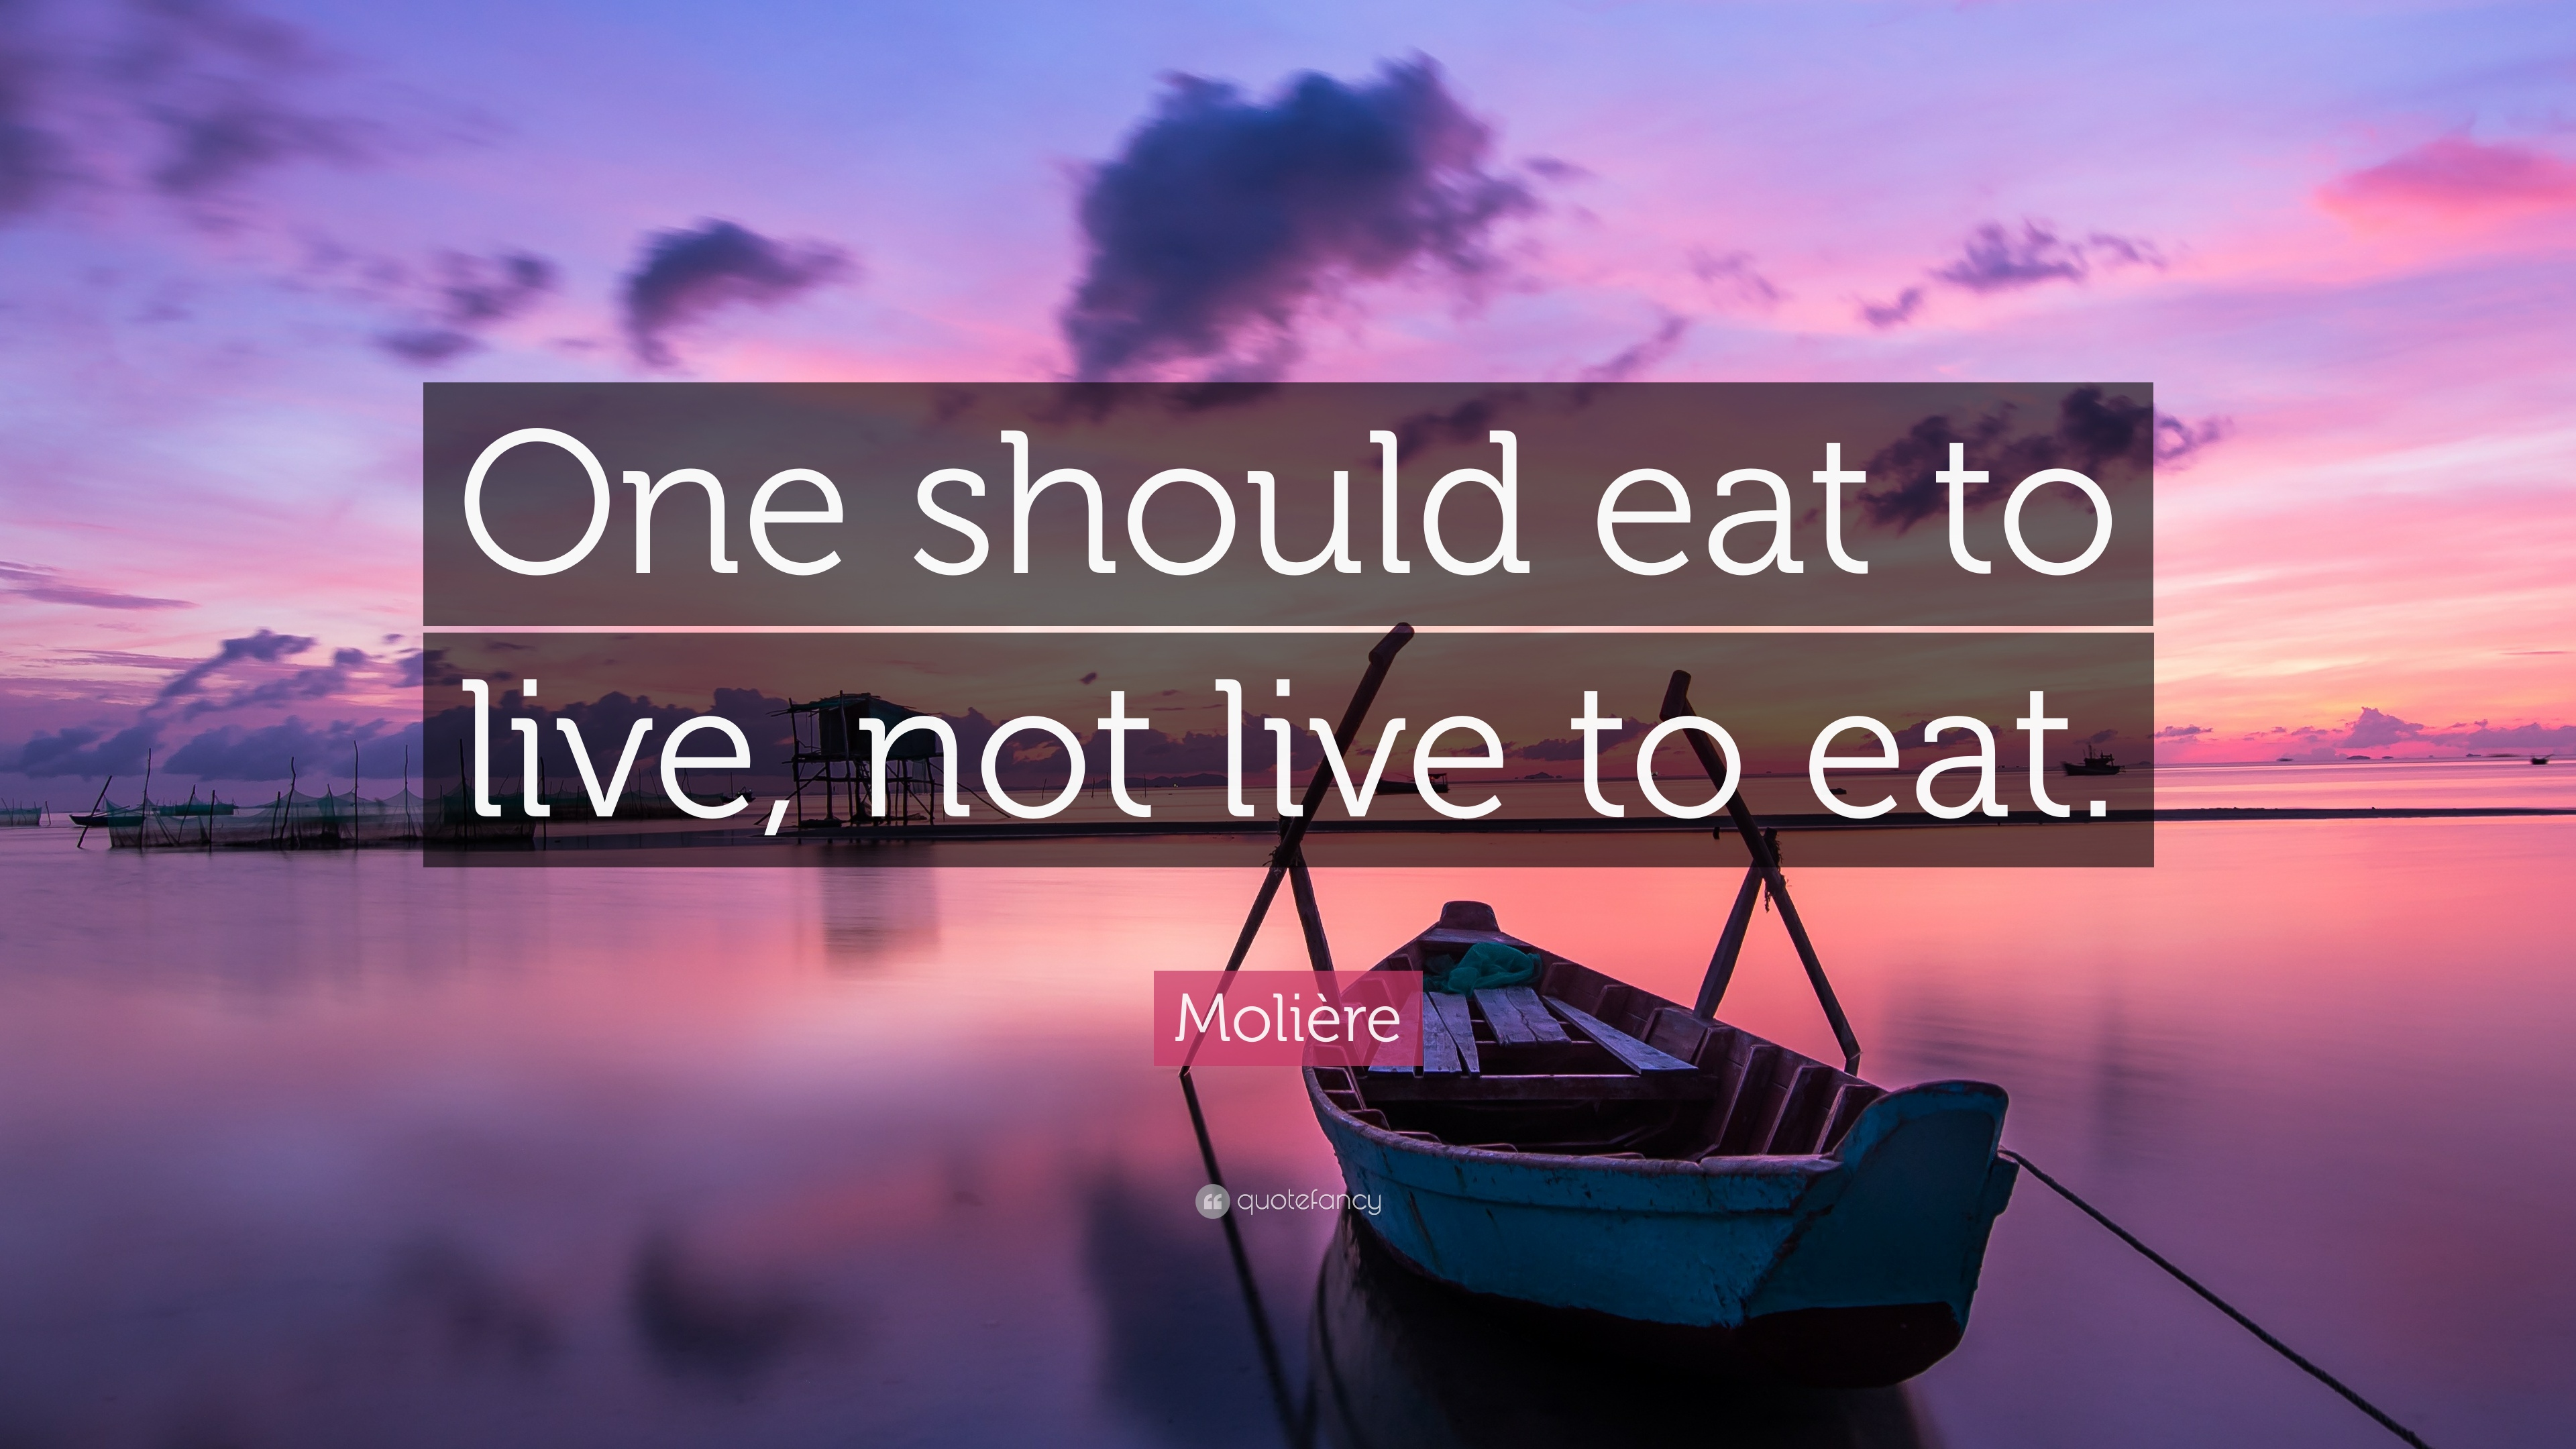 eat to live or live to eat essay ⭐️| diabetes | ☀☀☀ eat to live or live to eat essay ☀☀☀ the real cause of diabetes eat to live or live to eat essay,it solves the problem for you.